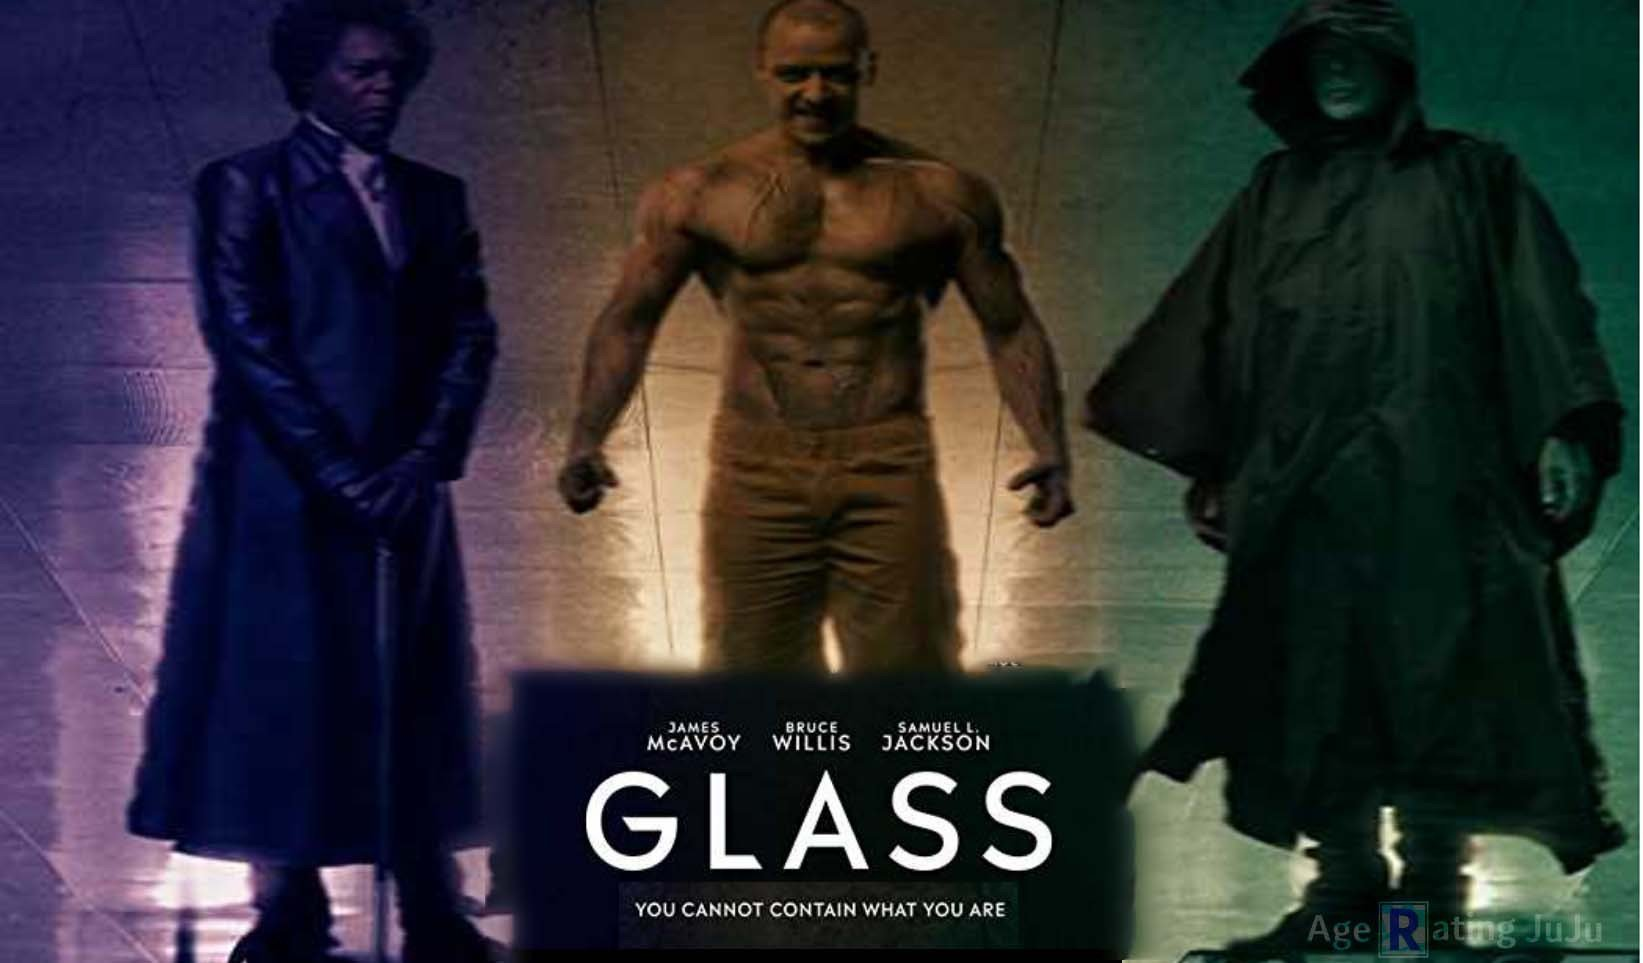 Movie Poster 2019: The Second Trailer For 'GLASS' Brings Us Lots Of Bad Guys